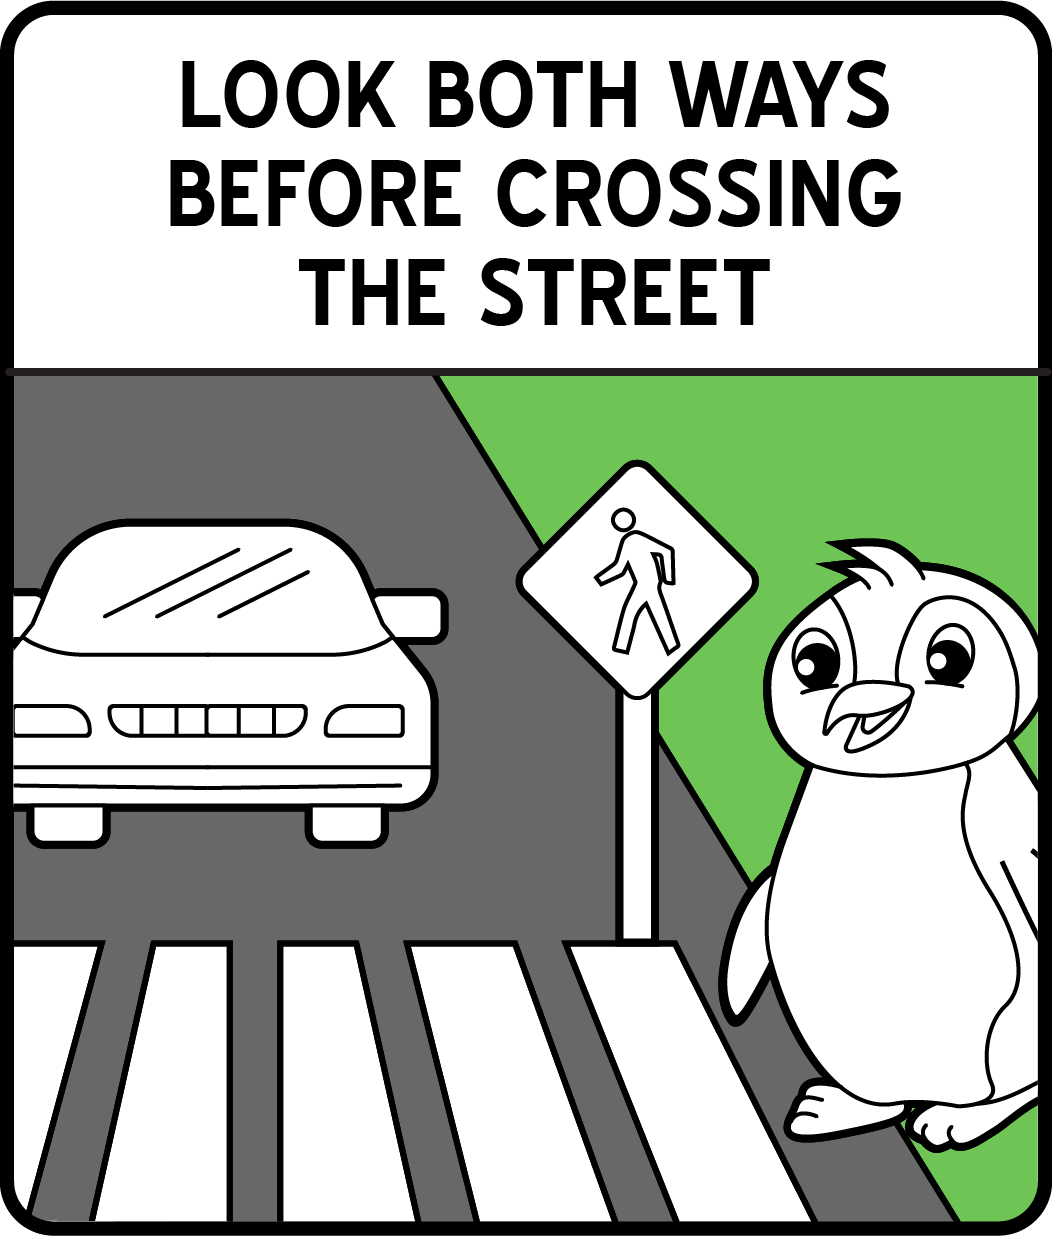 A cartoon penguin about to cross the street while a car is coming.